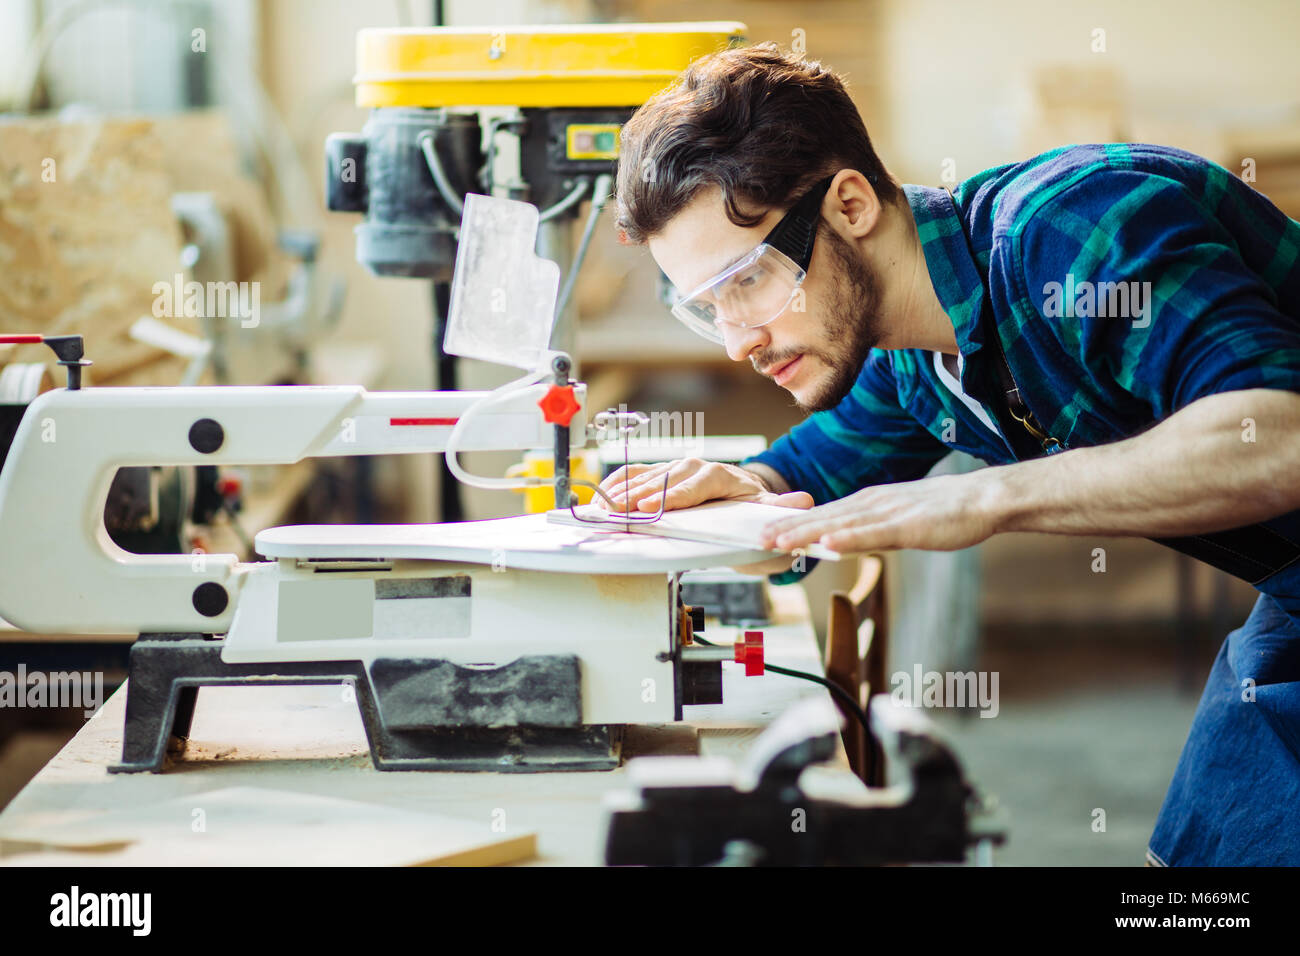 Carpenter engaged in processing wood at the sawmill. Stock Photo